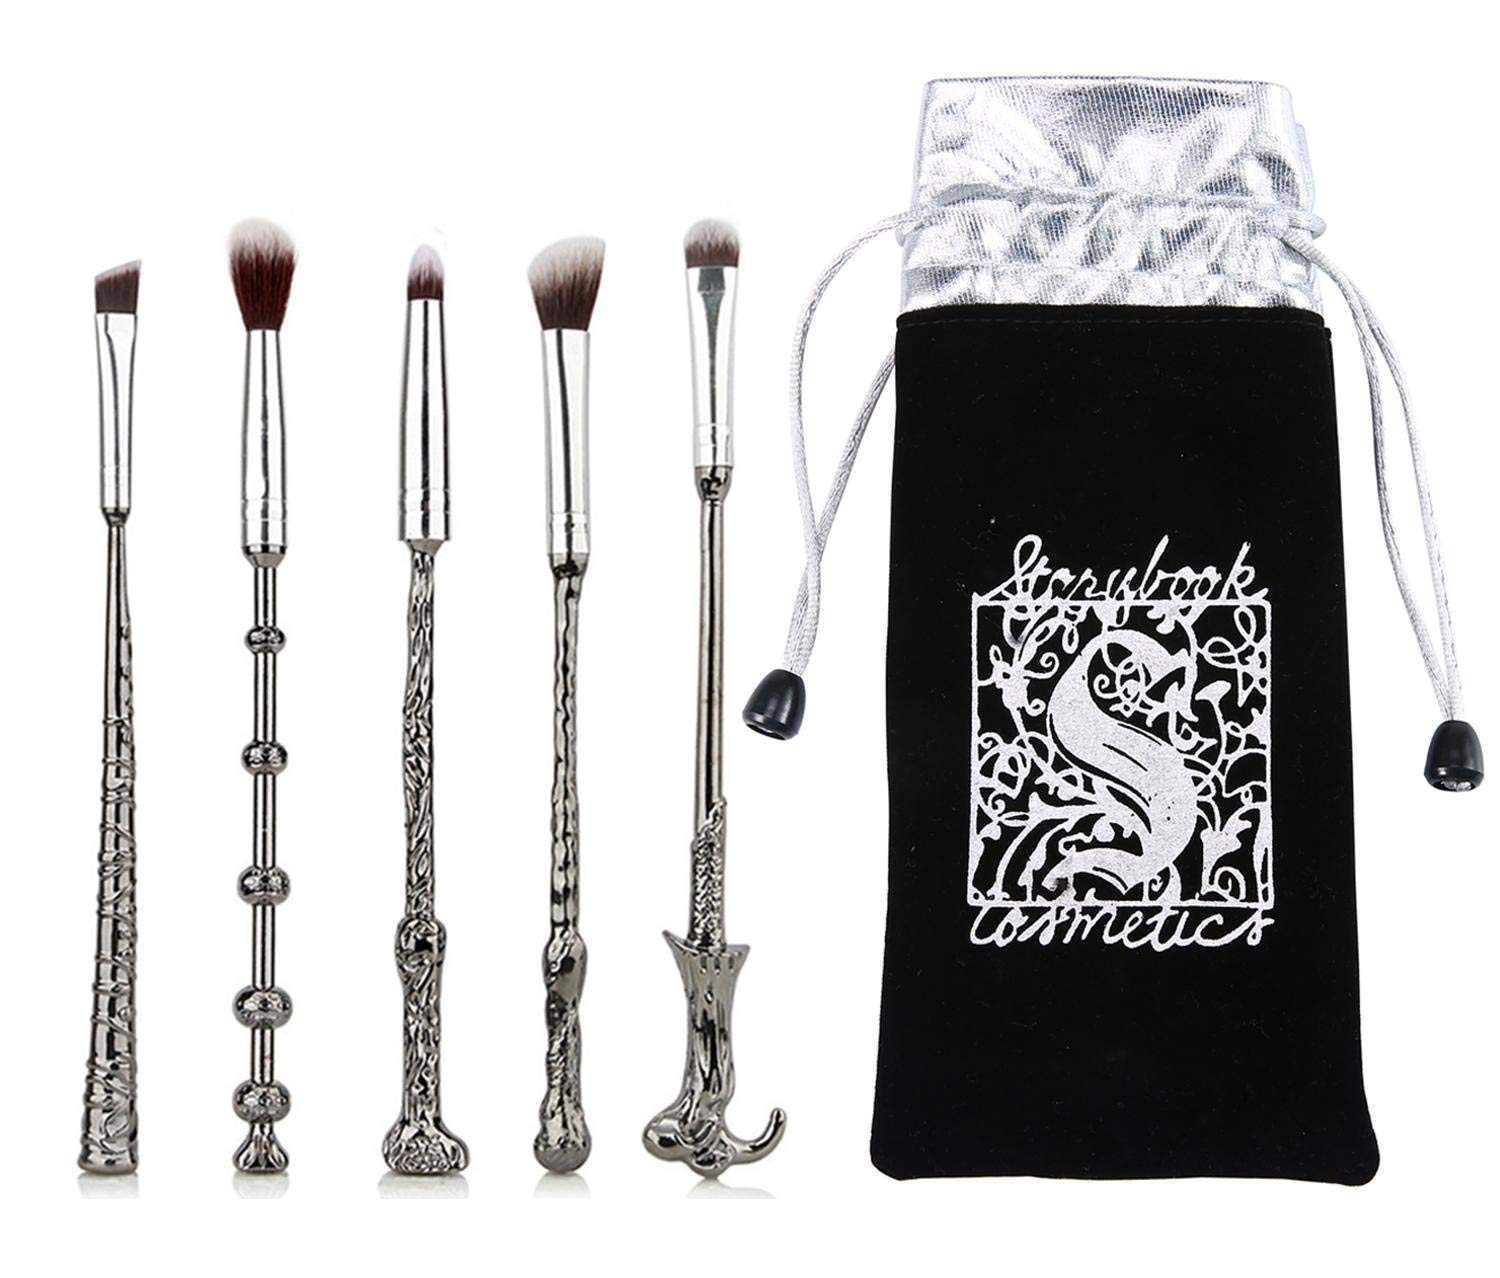 Harry Potter Makeup Brushes Kit 5Pcs with Bag Magic Wizard Wand Metal Make Up Brush Set Tool for Foundation Powder Concealers Eye Shadows Eyeliner Blending Eyeshadow Face Pencil Lip Palette Beauty